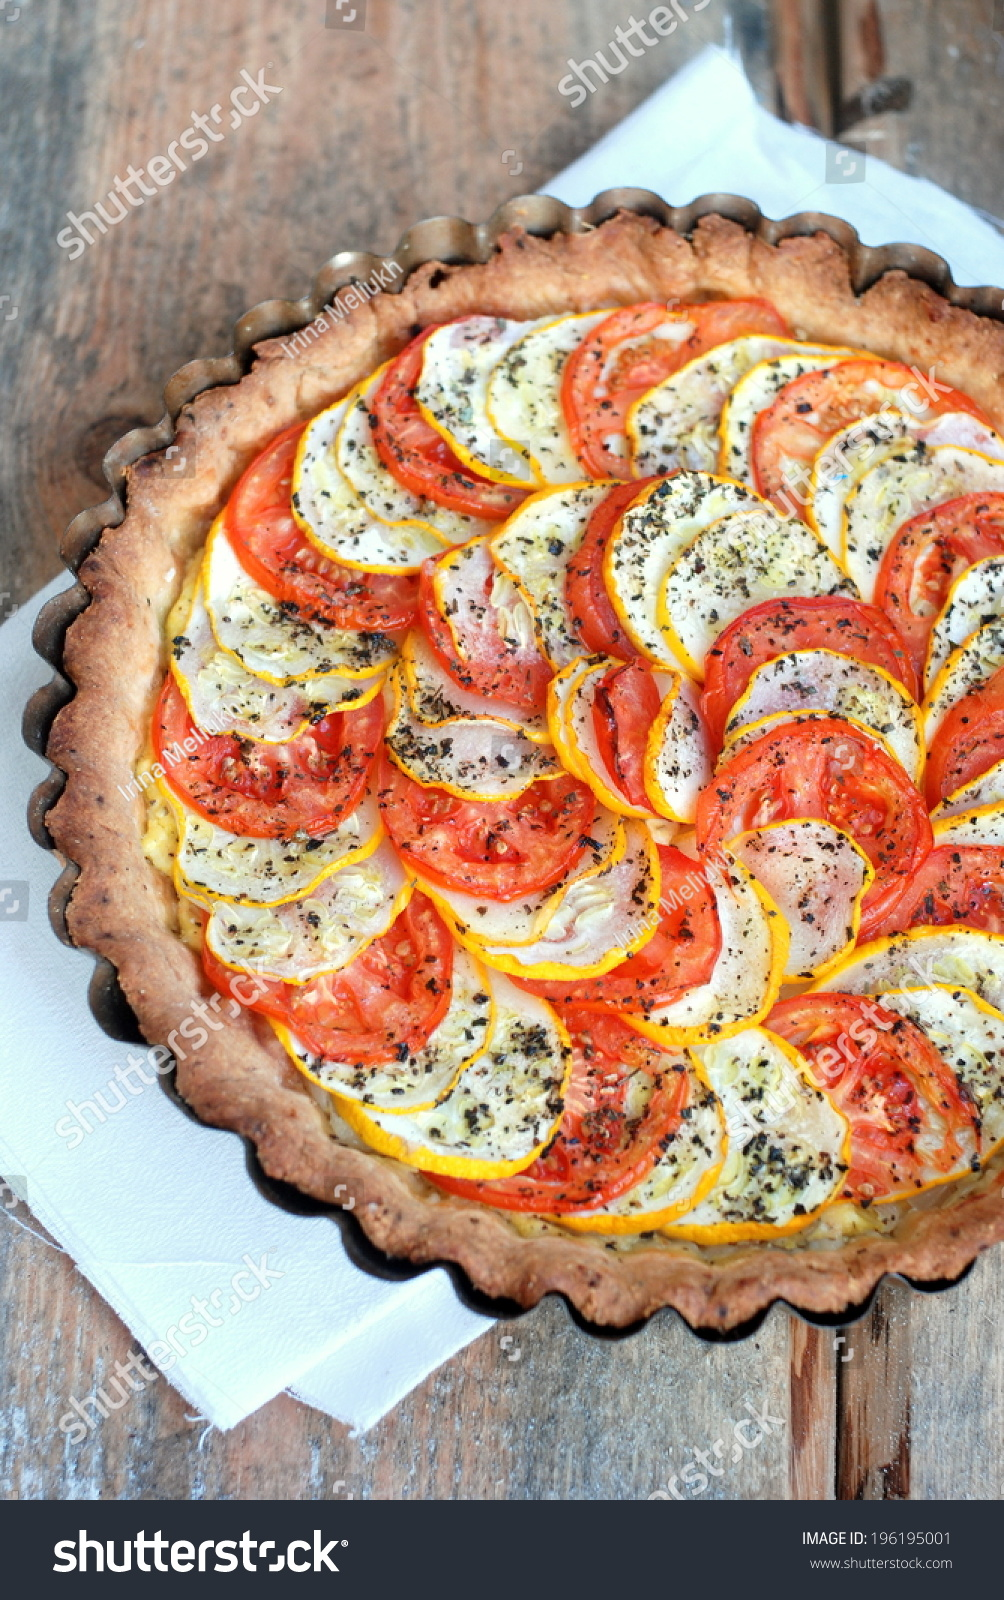 Tomato And Zucchini Tart With Goat Cheese, Selective Focus Stock Photo ...